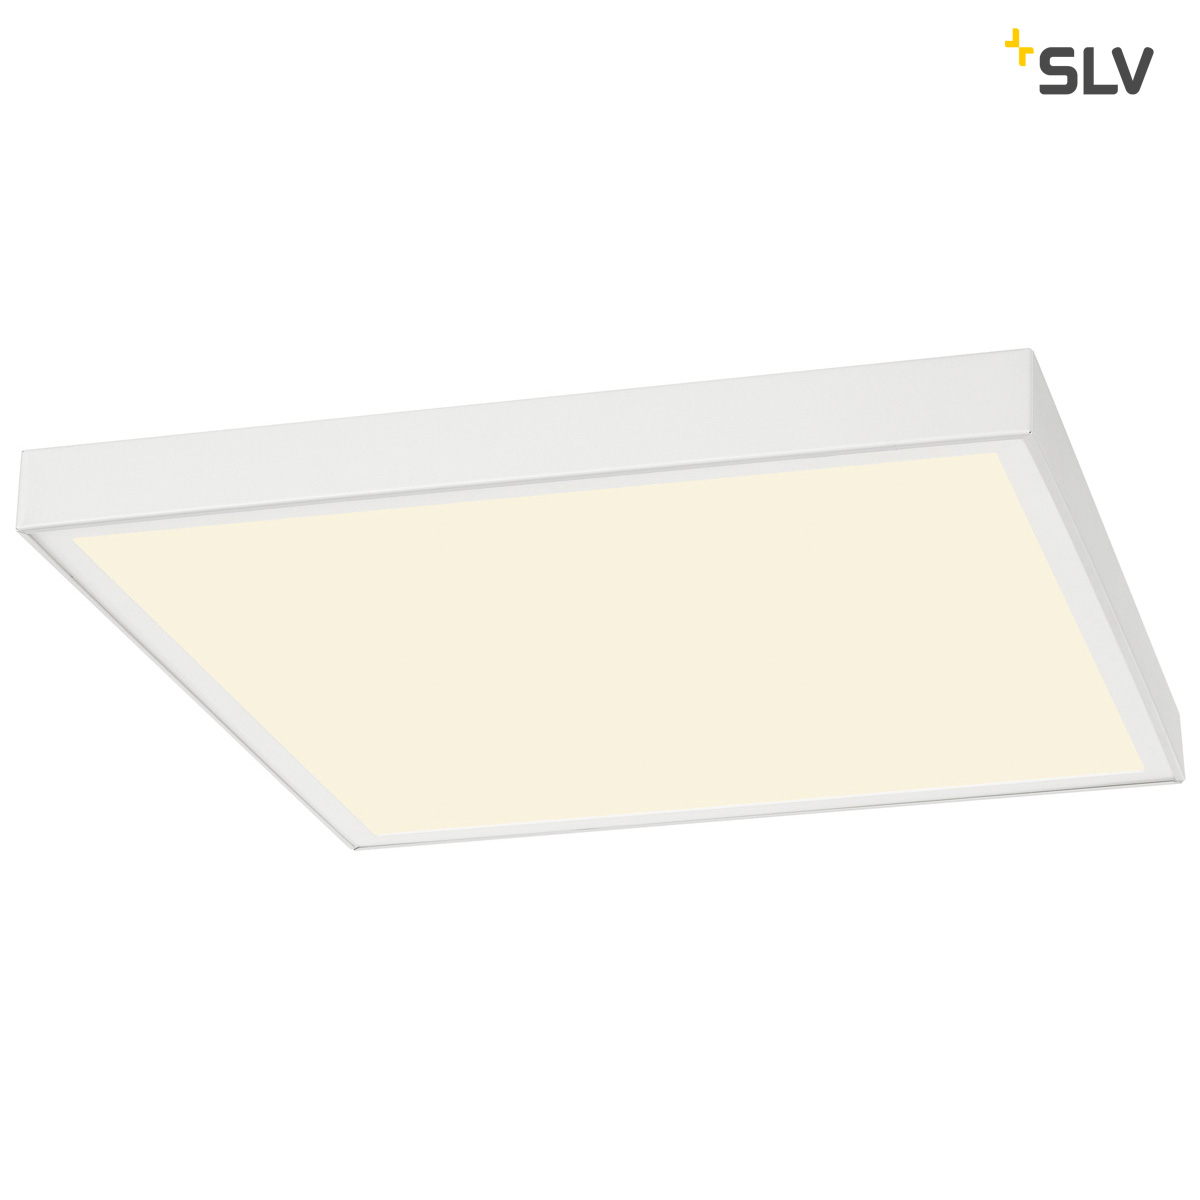 SLV I-VIDUAL LED PANEL 62,5x62,5 raster wit LED 3000K